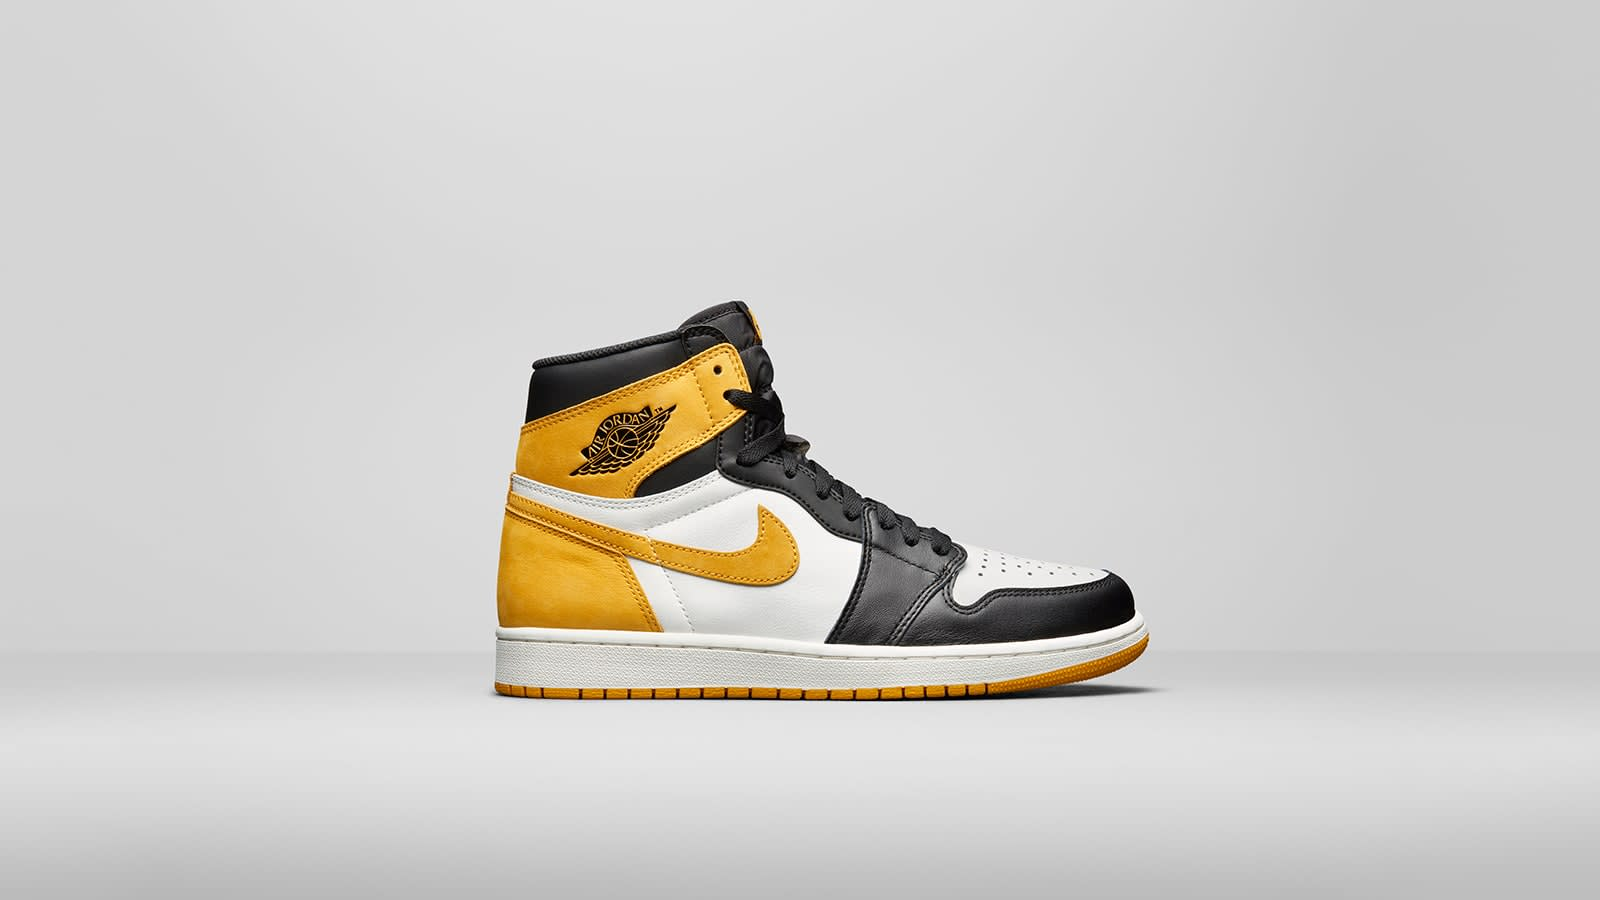 END. Features | Nike Air Jordan 1 'Best Hand in the Game